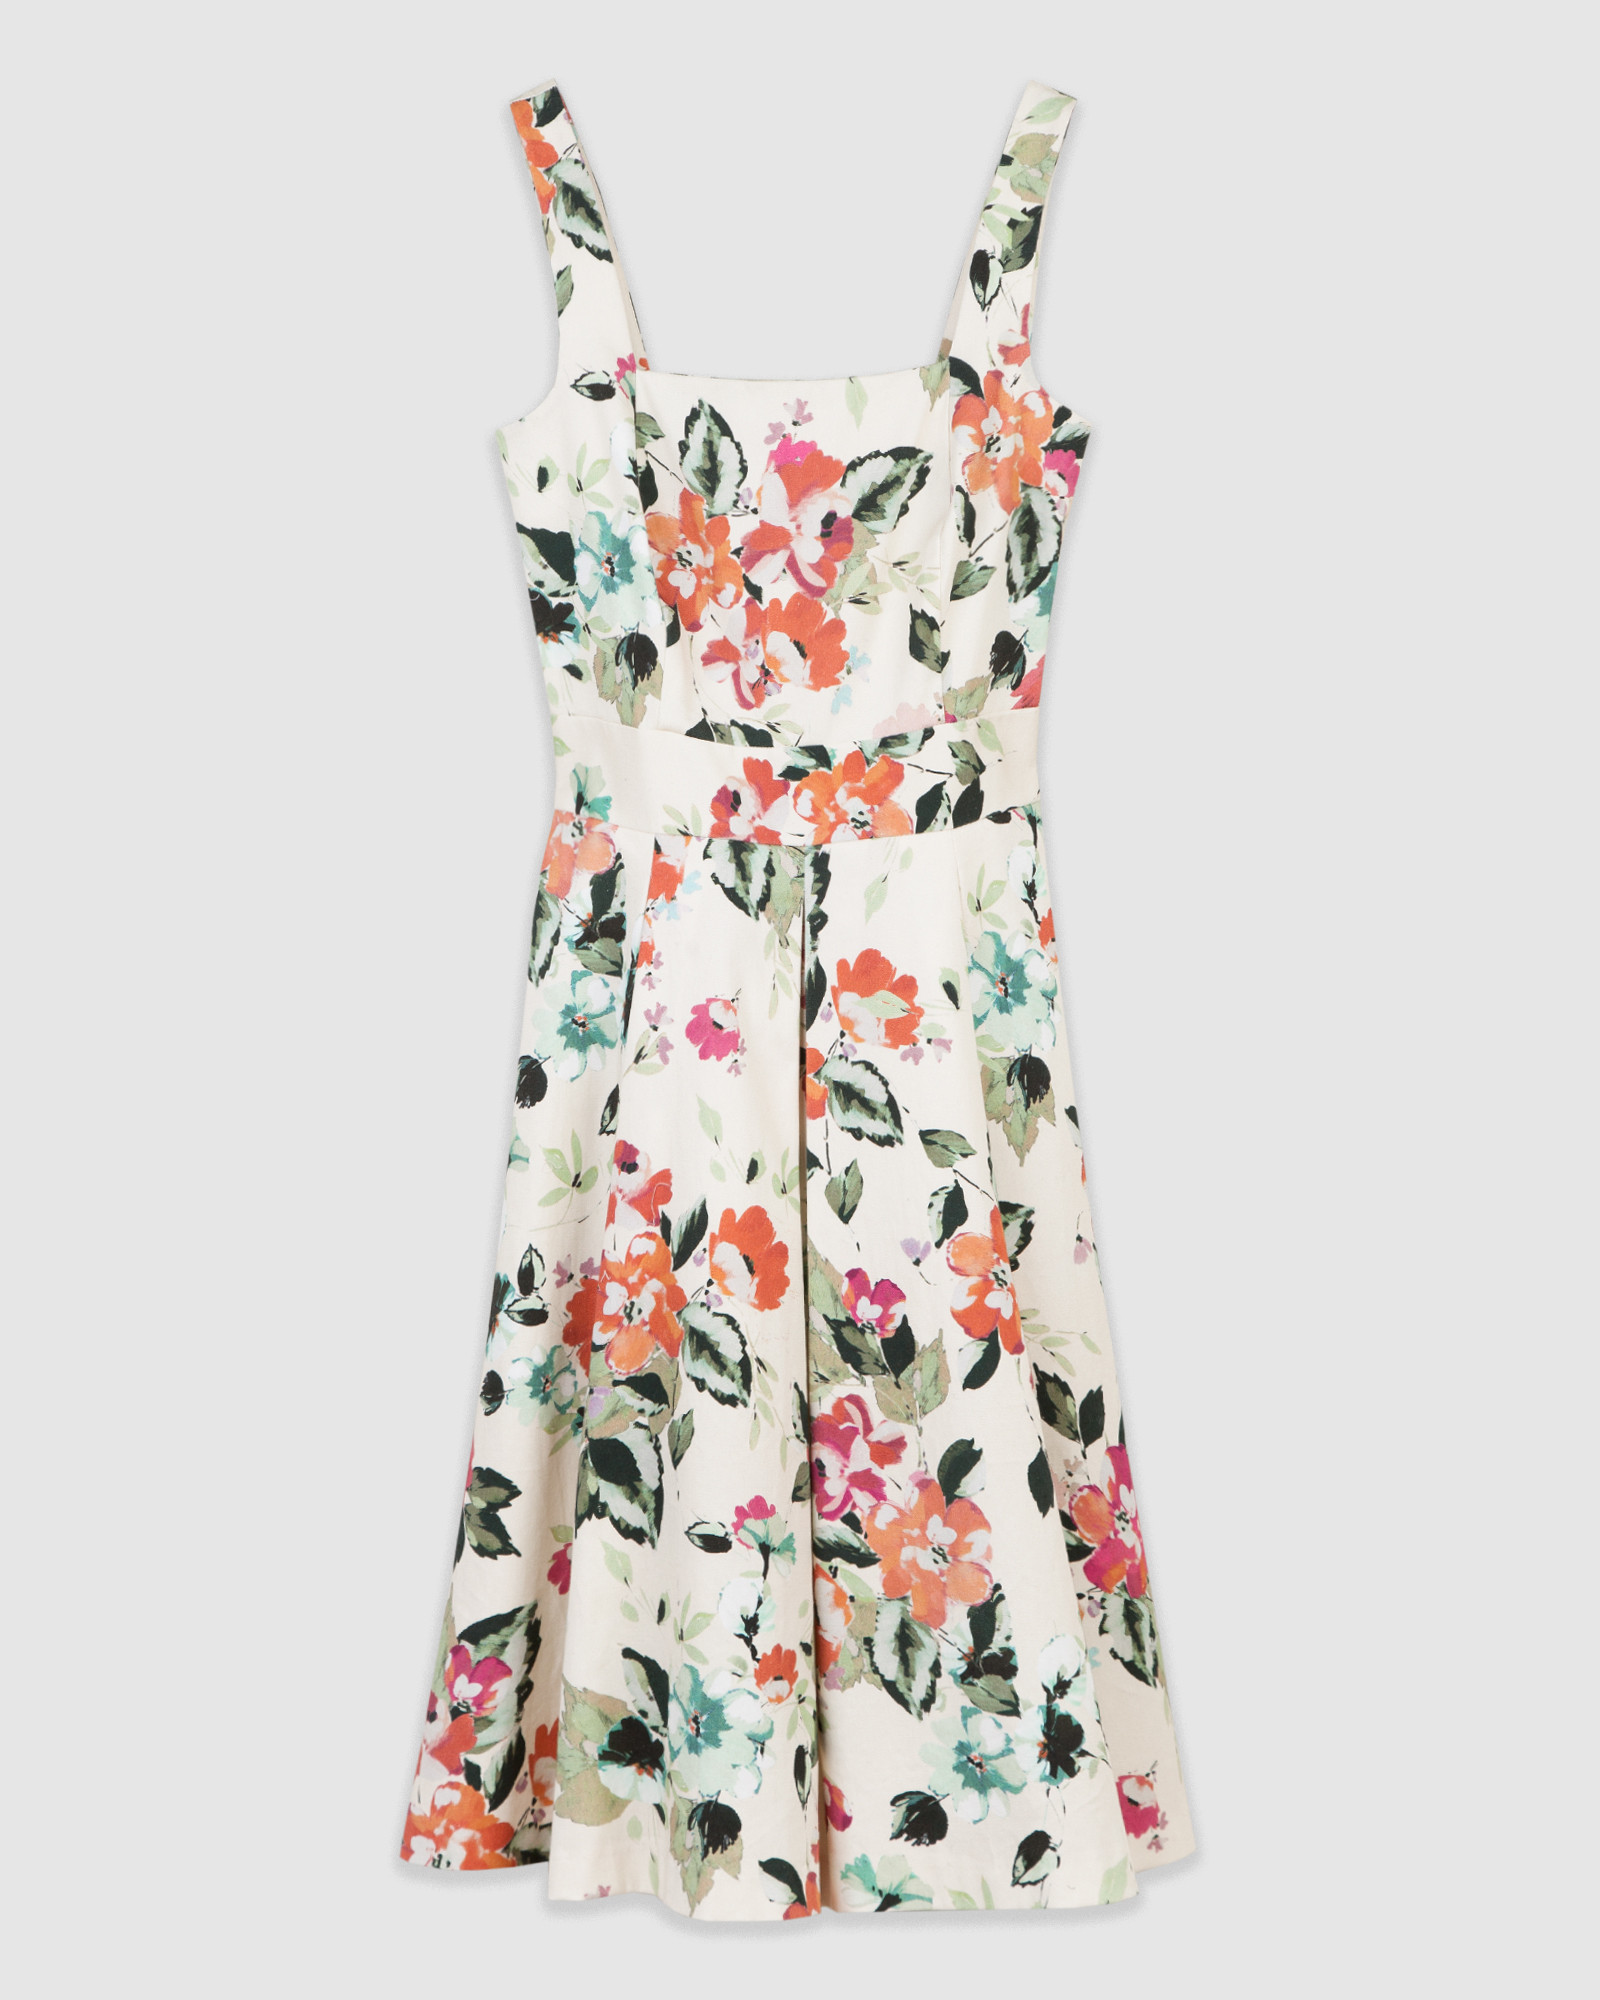 Maxipleated Floral Dress